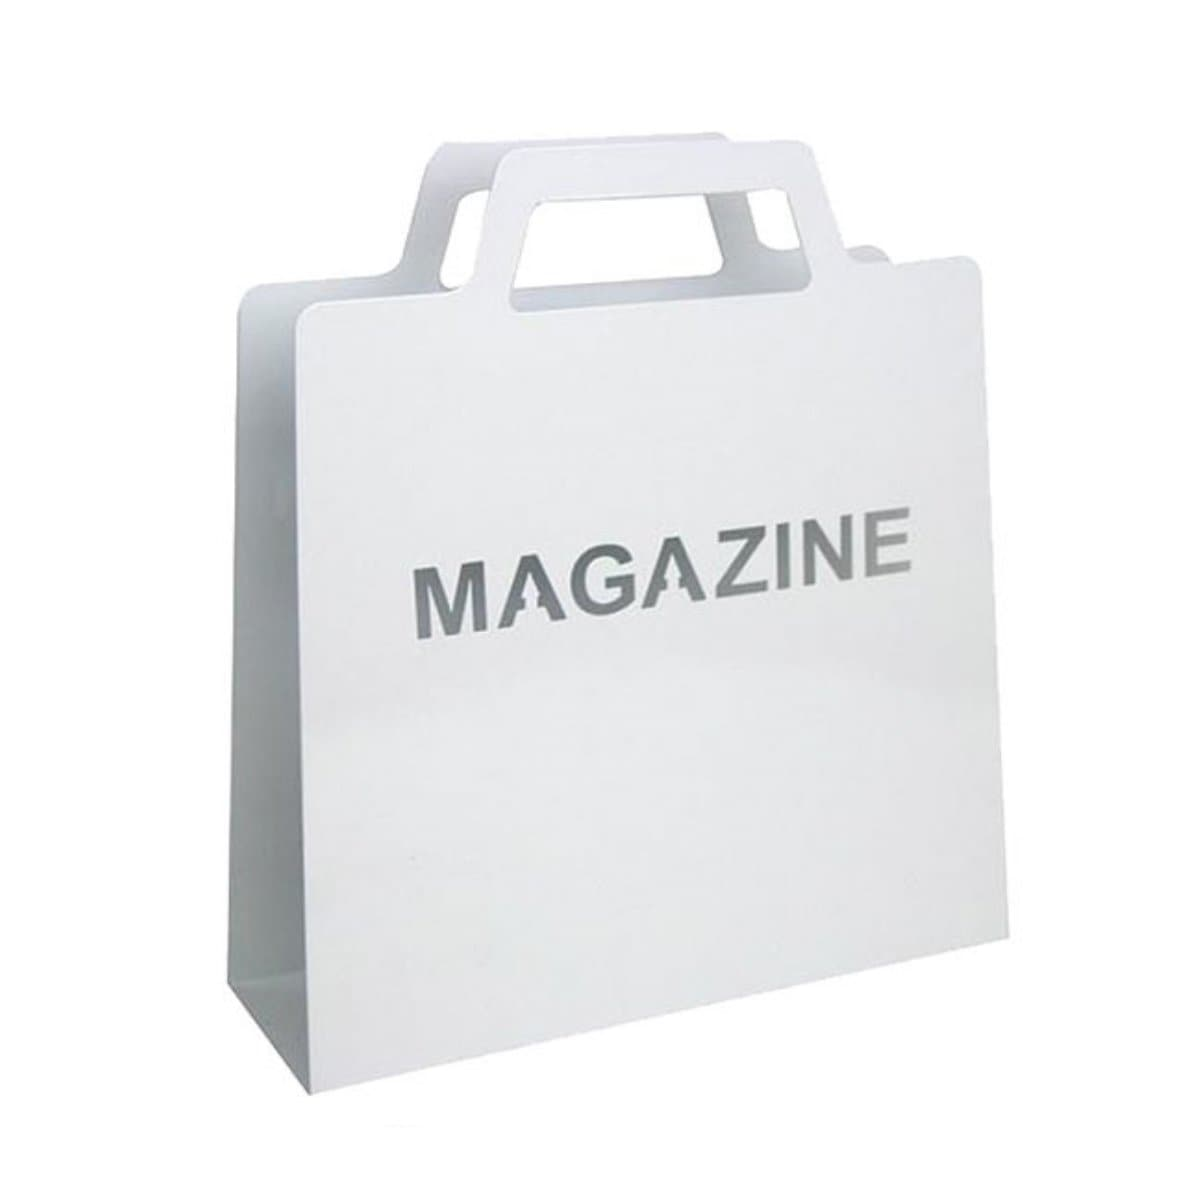 Trendform Newspaper Stand MAGAZINE, White